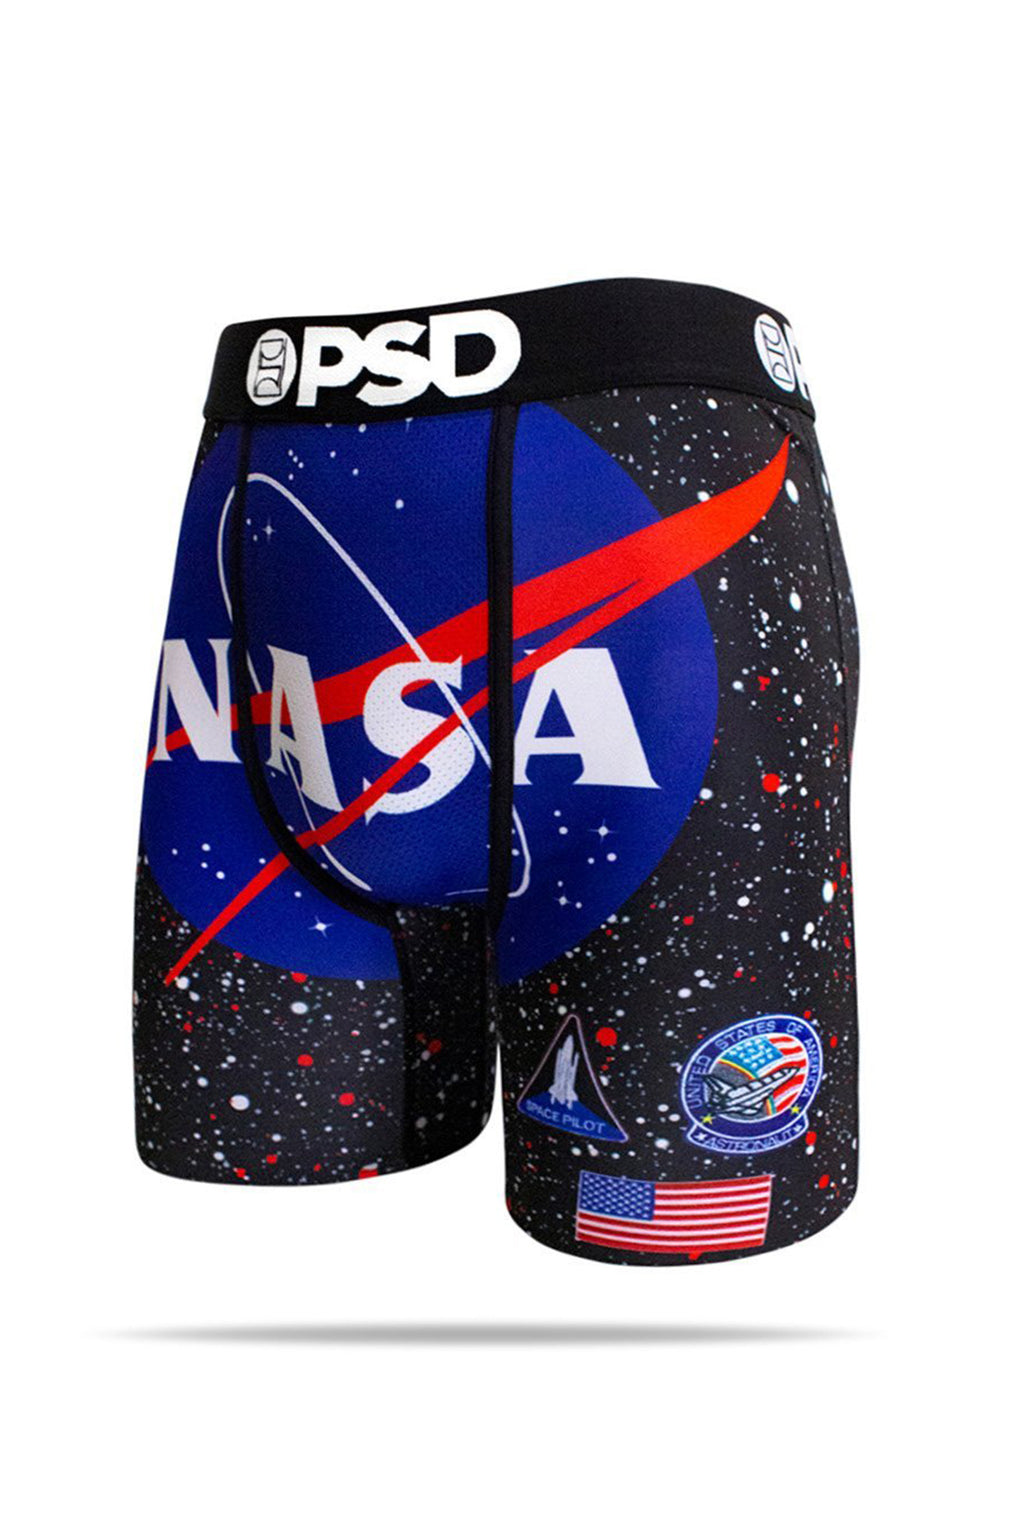 Psd Men Staple Nasa